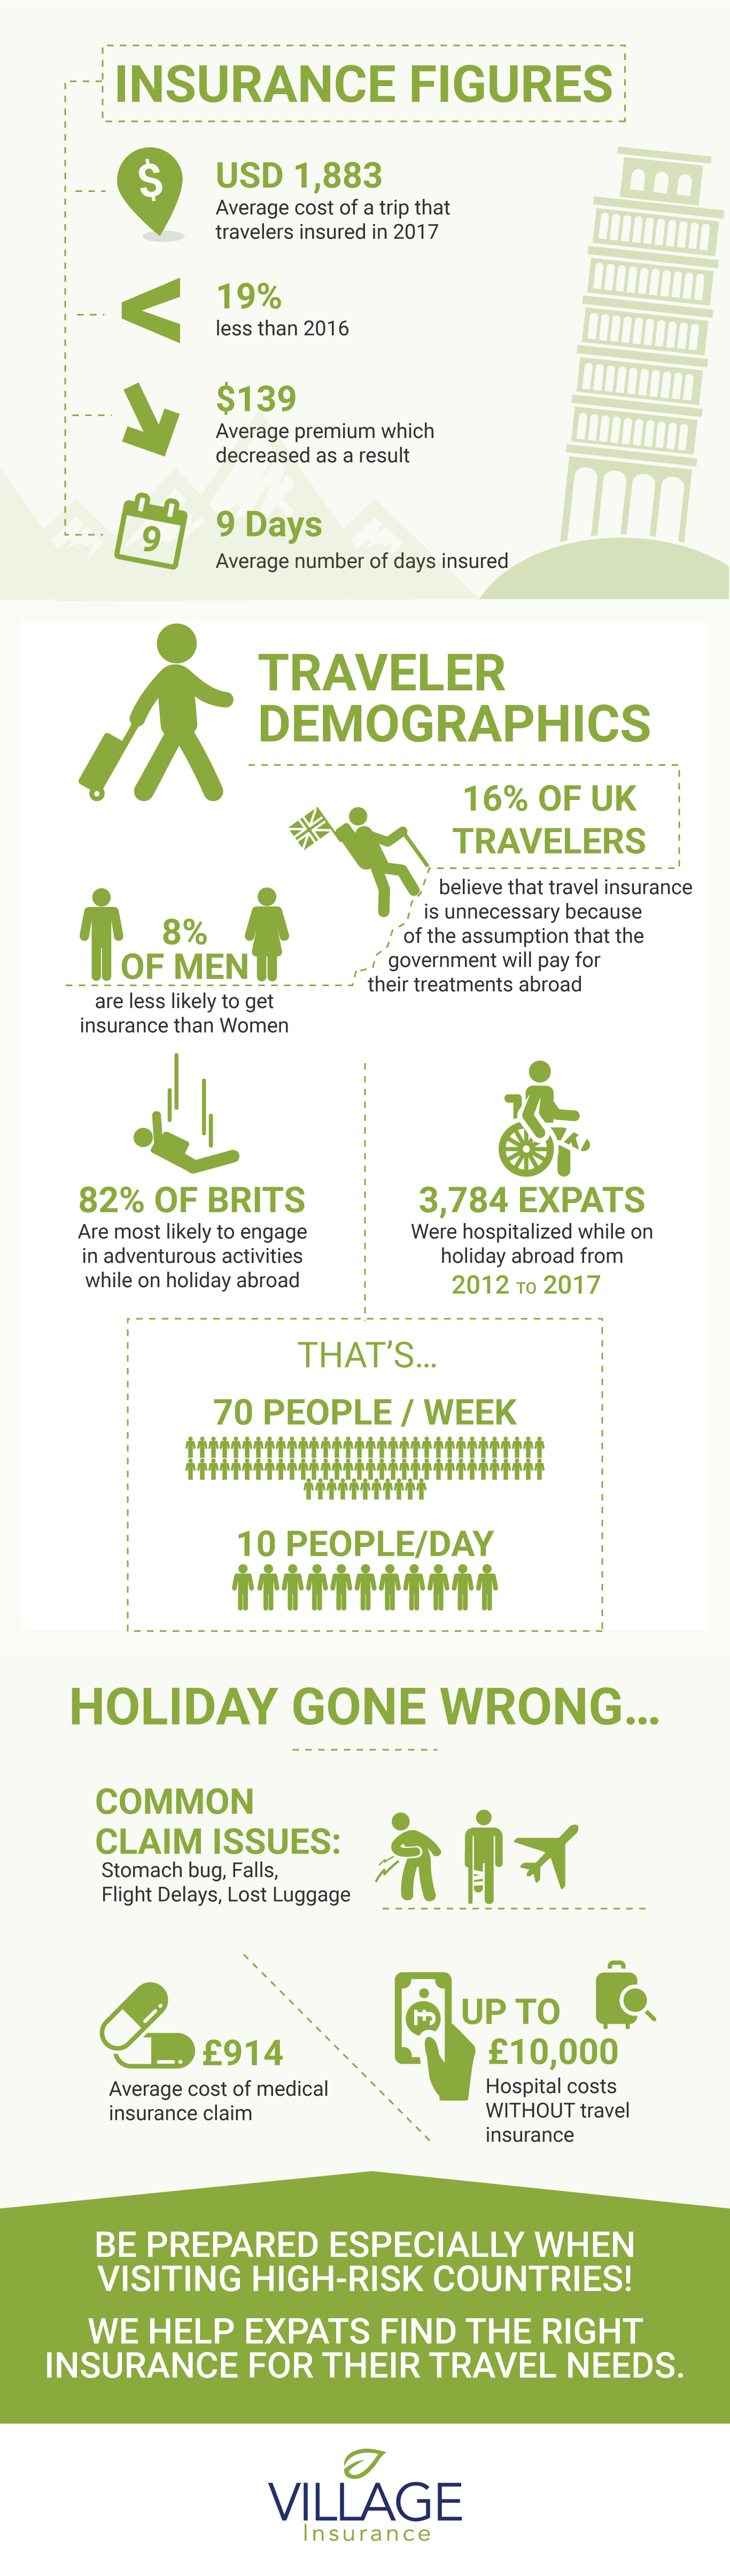 infographic travel insurance facts 2018 from Village Insurance